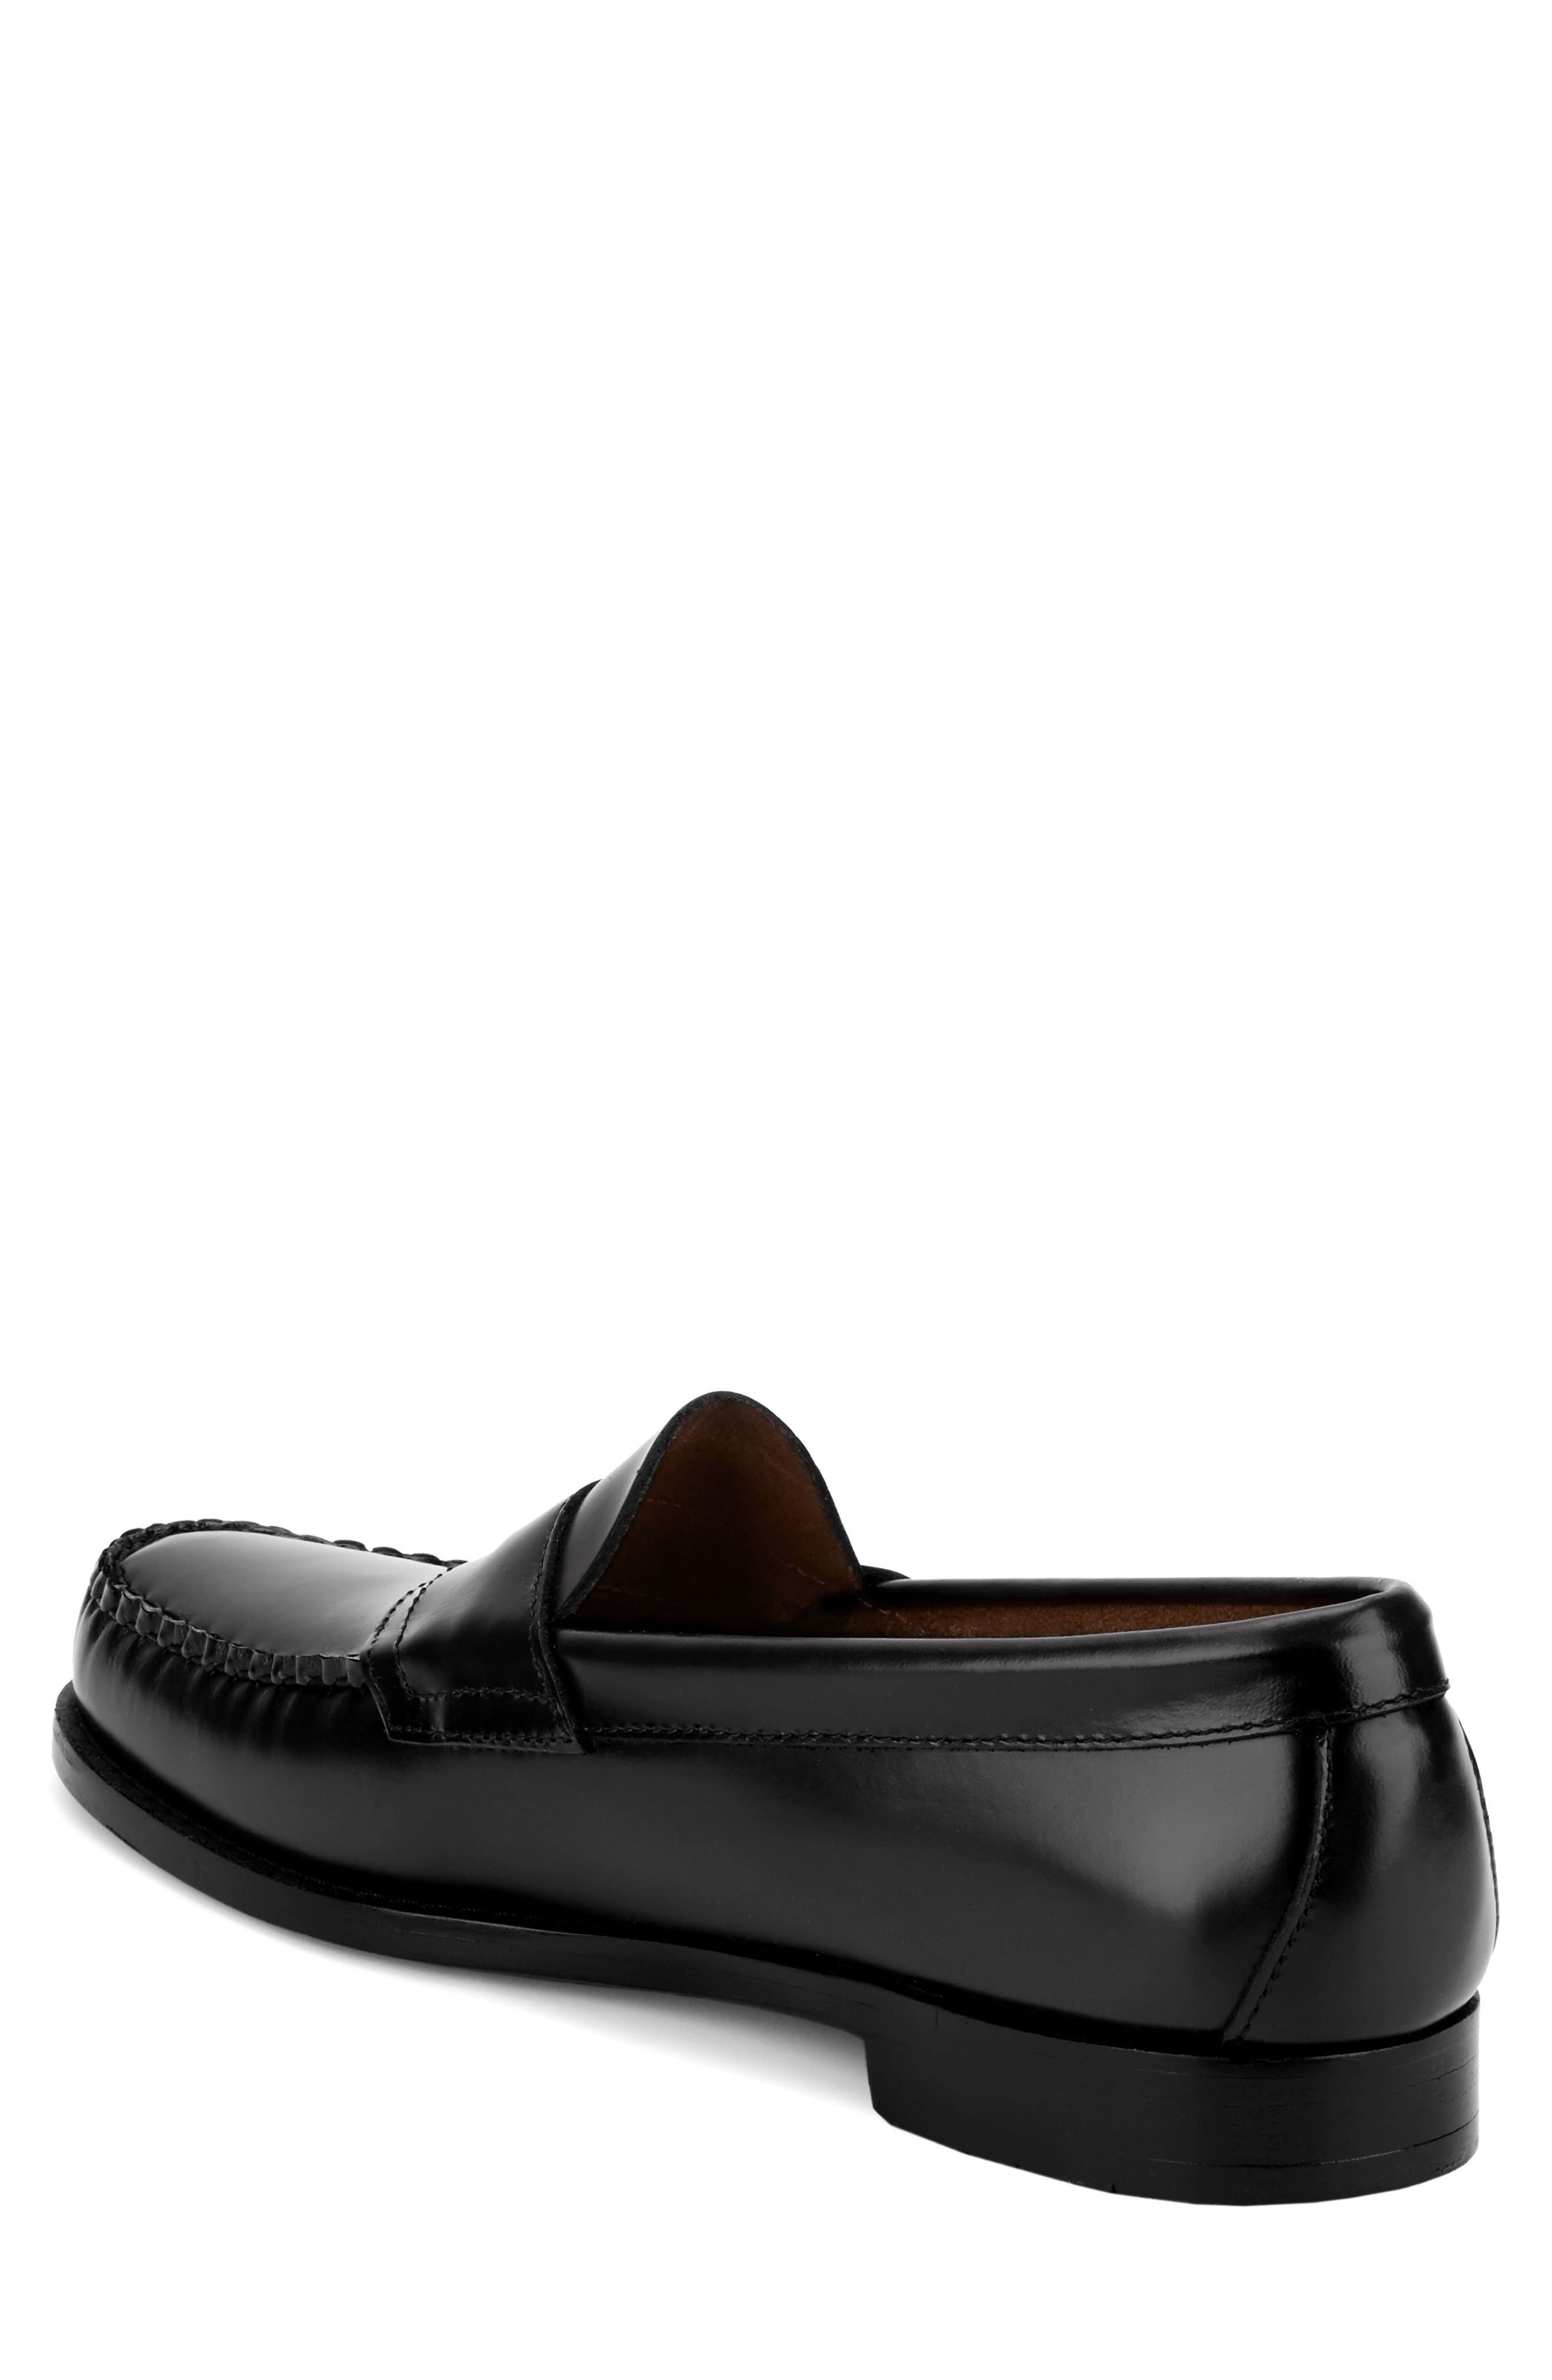 Logan Penny Loafer,                             Alternate thumbnail 2, color,                             001